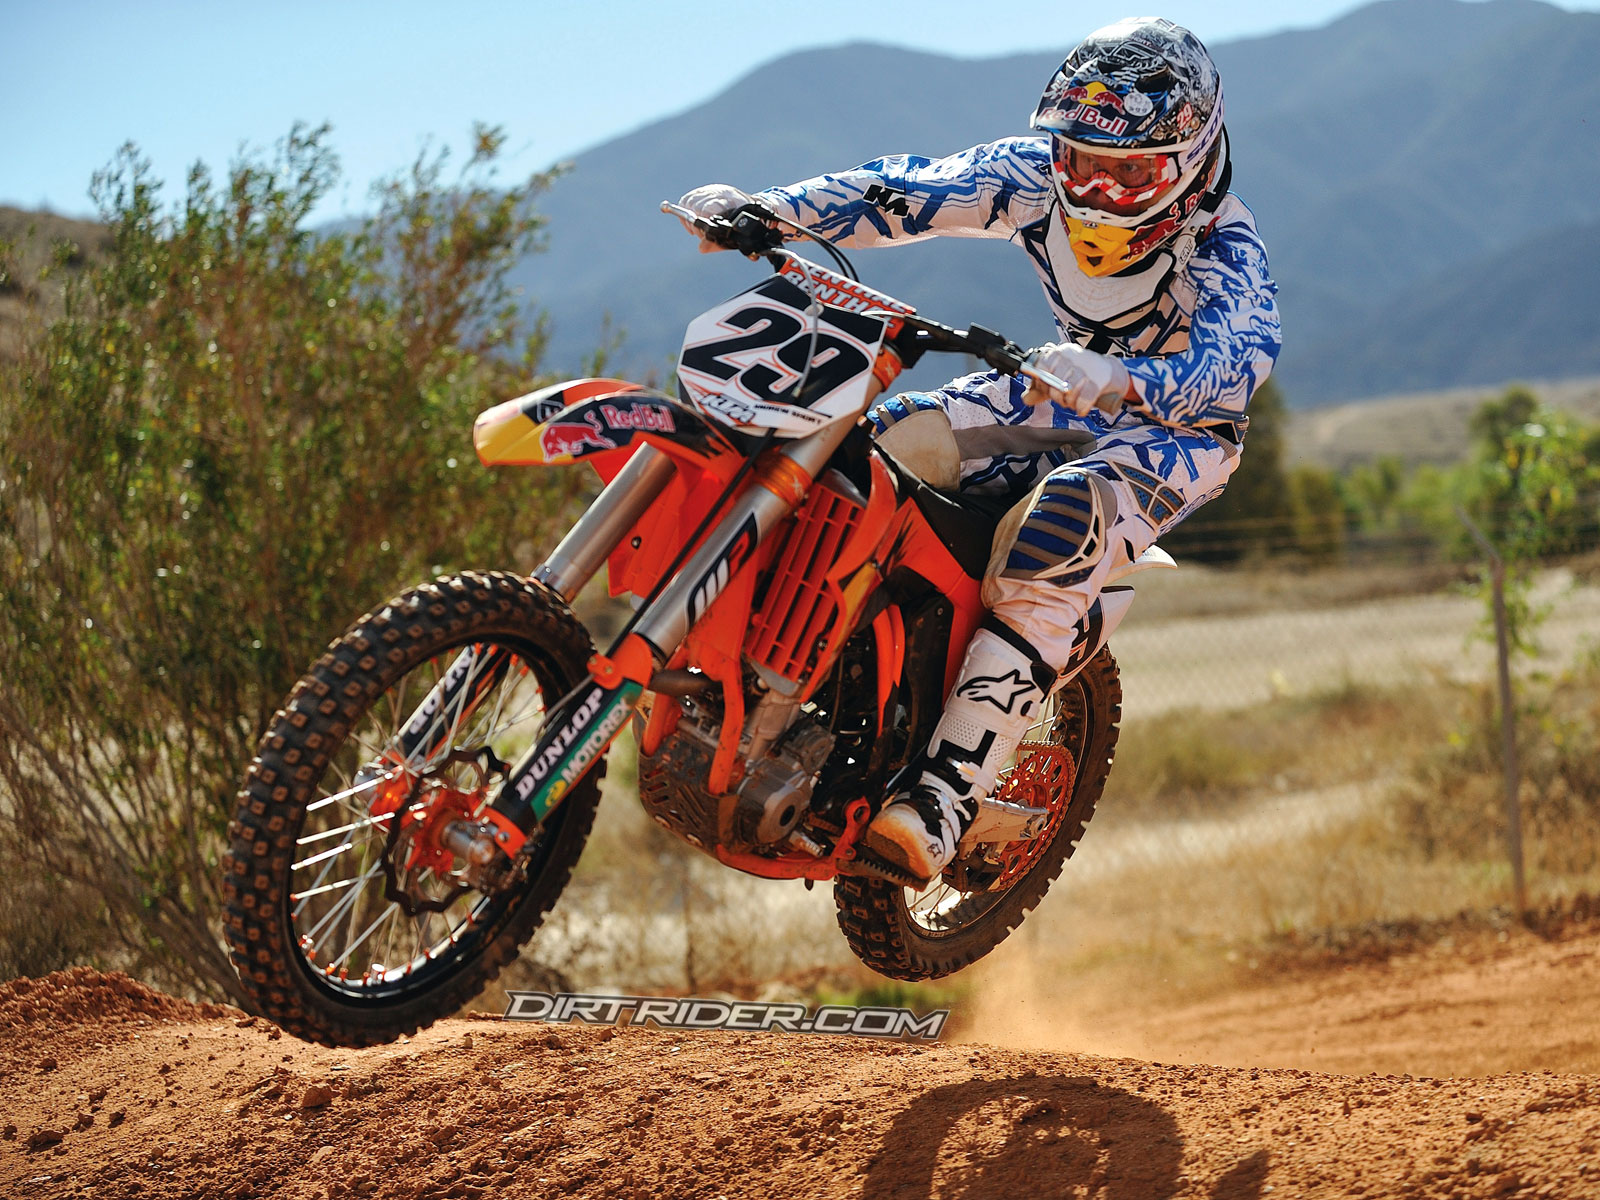 Ktm Dirt Bike Wallpaper   wallpaper 1600x1200